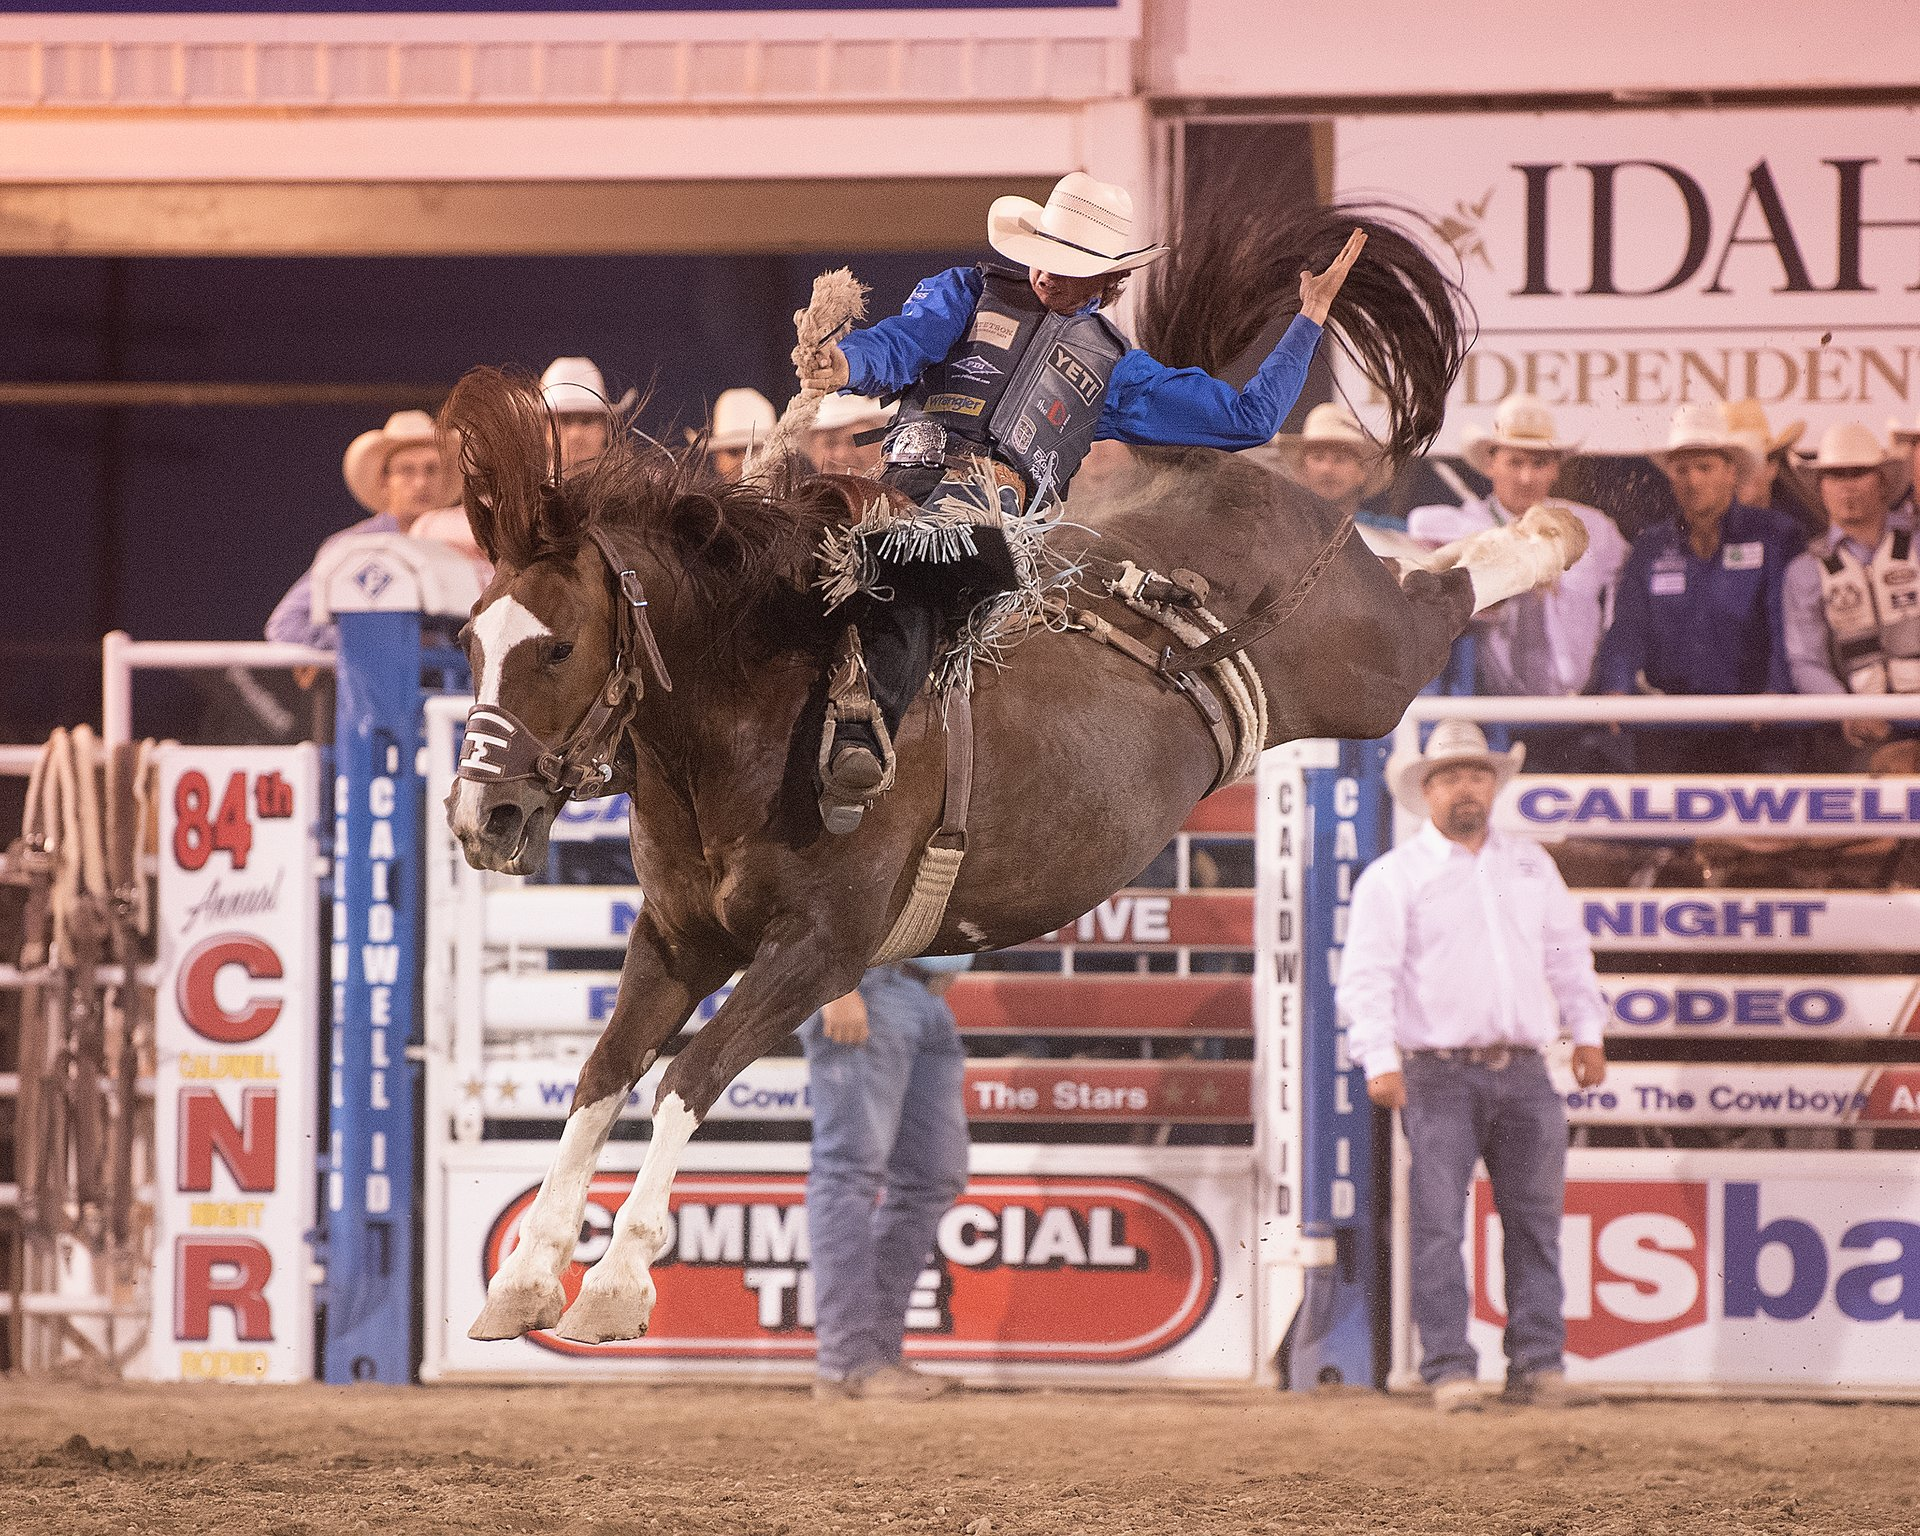 Caldwell Night Rodeo in Idaho 2020 - Best Time